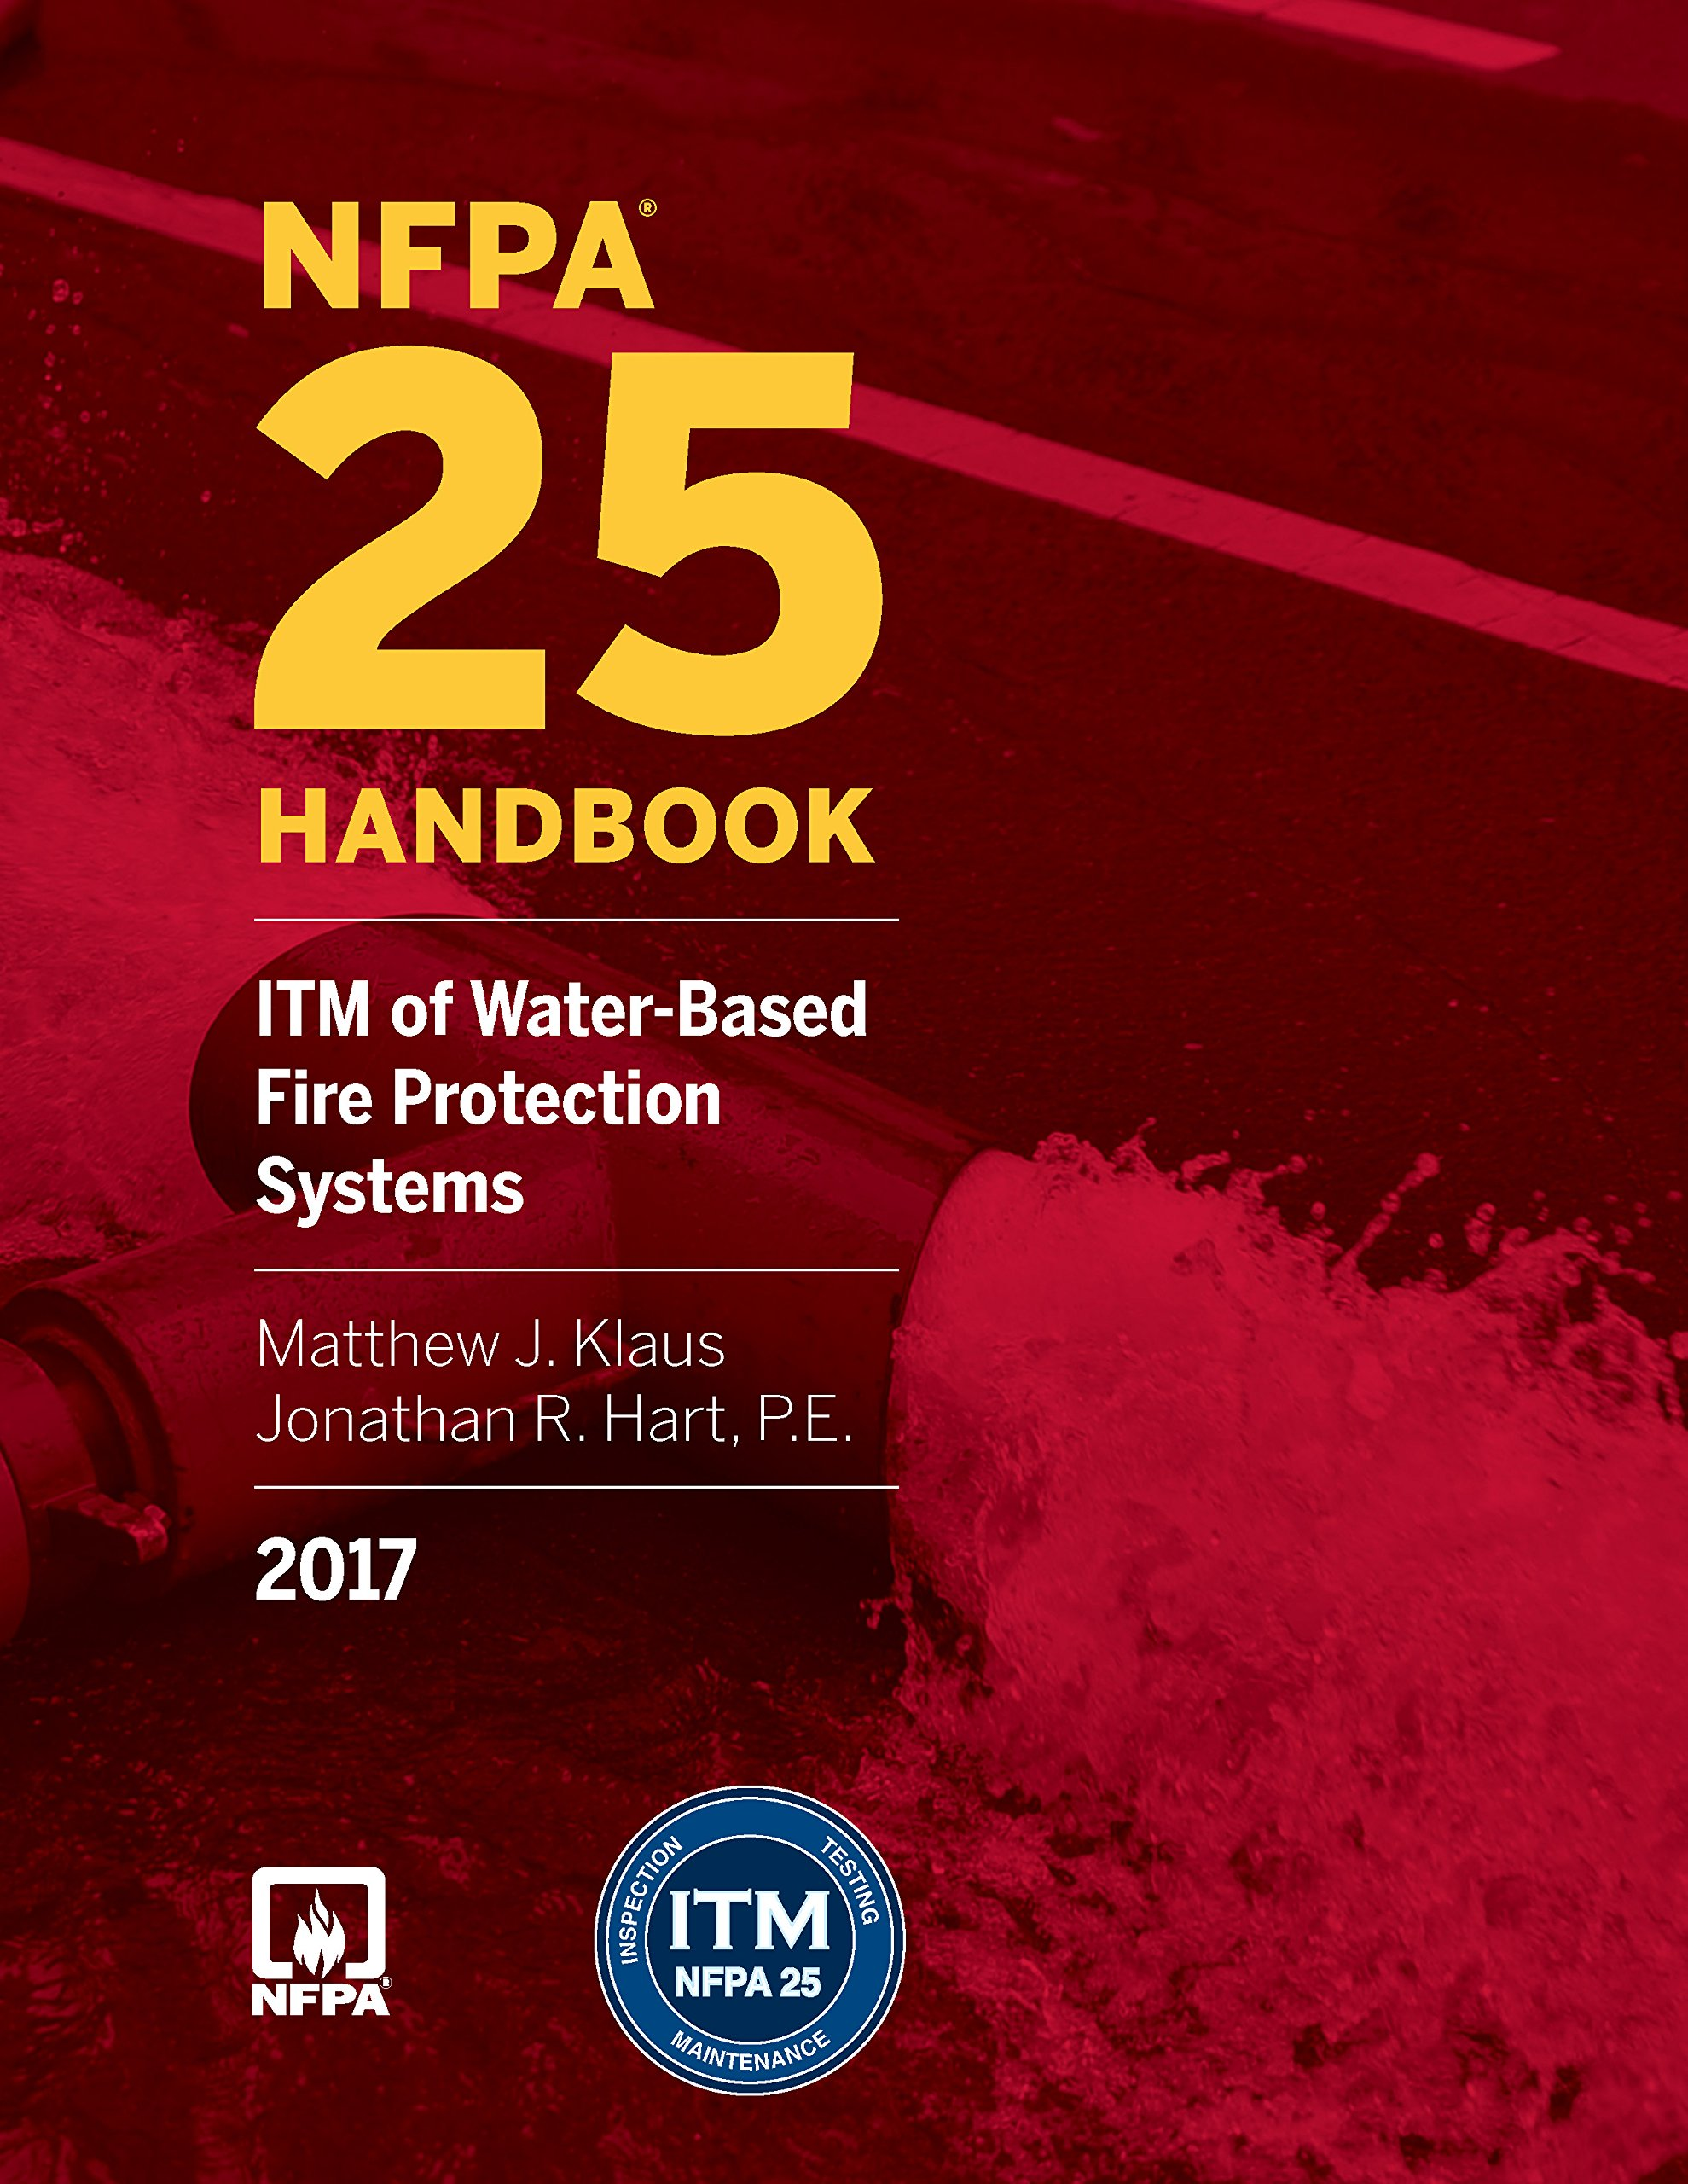 NFPA 25: ITM of Water-Based Fire Protection Systems Handbook, 2017 Edition by National Fire Protection Association